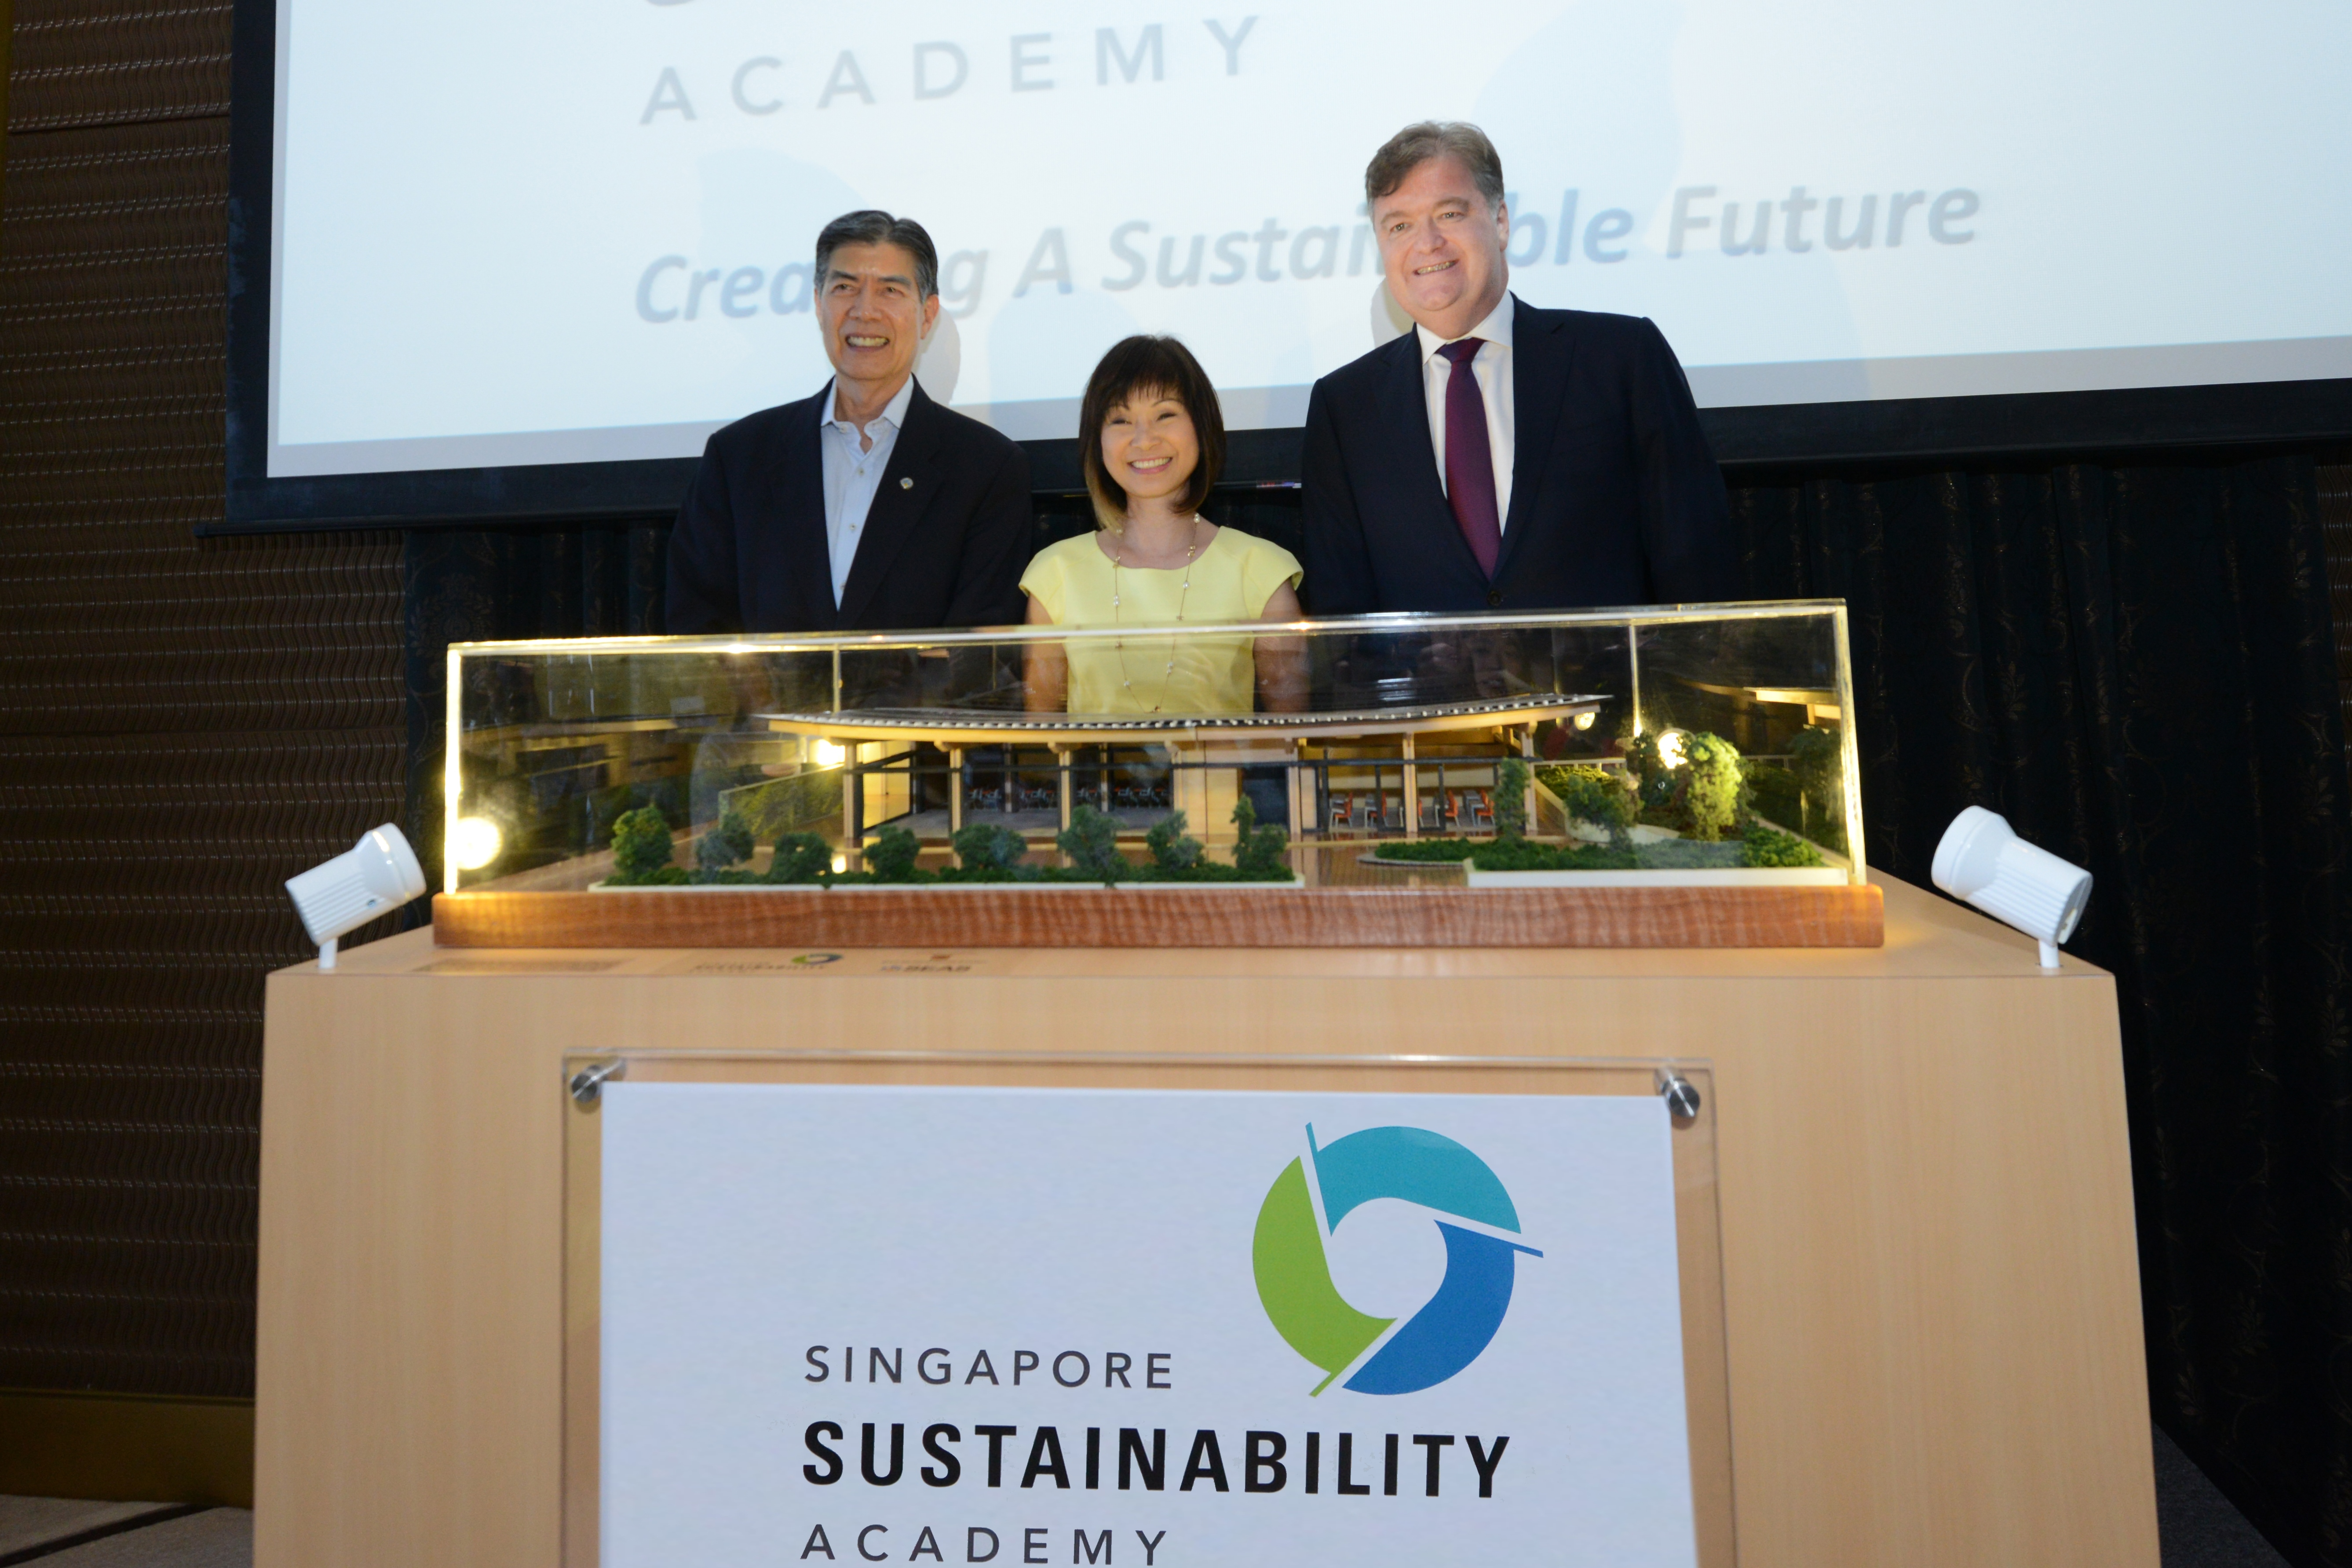 Singapore Sustainability Academy